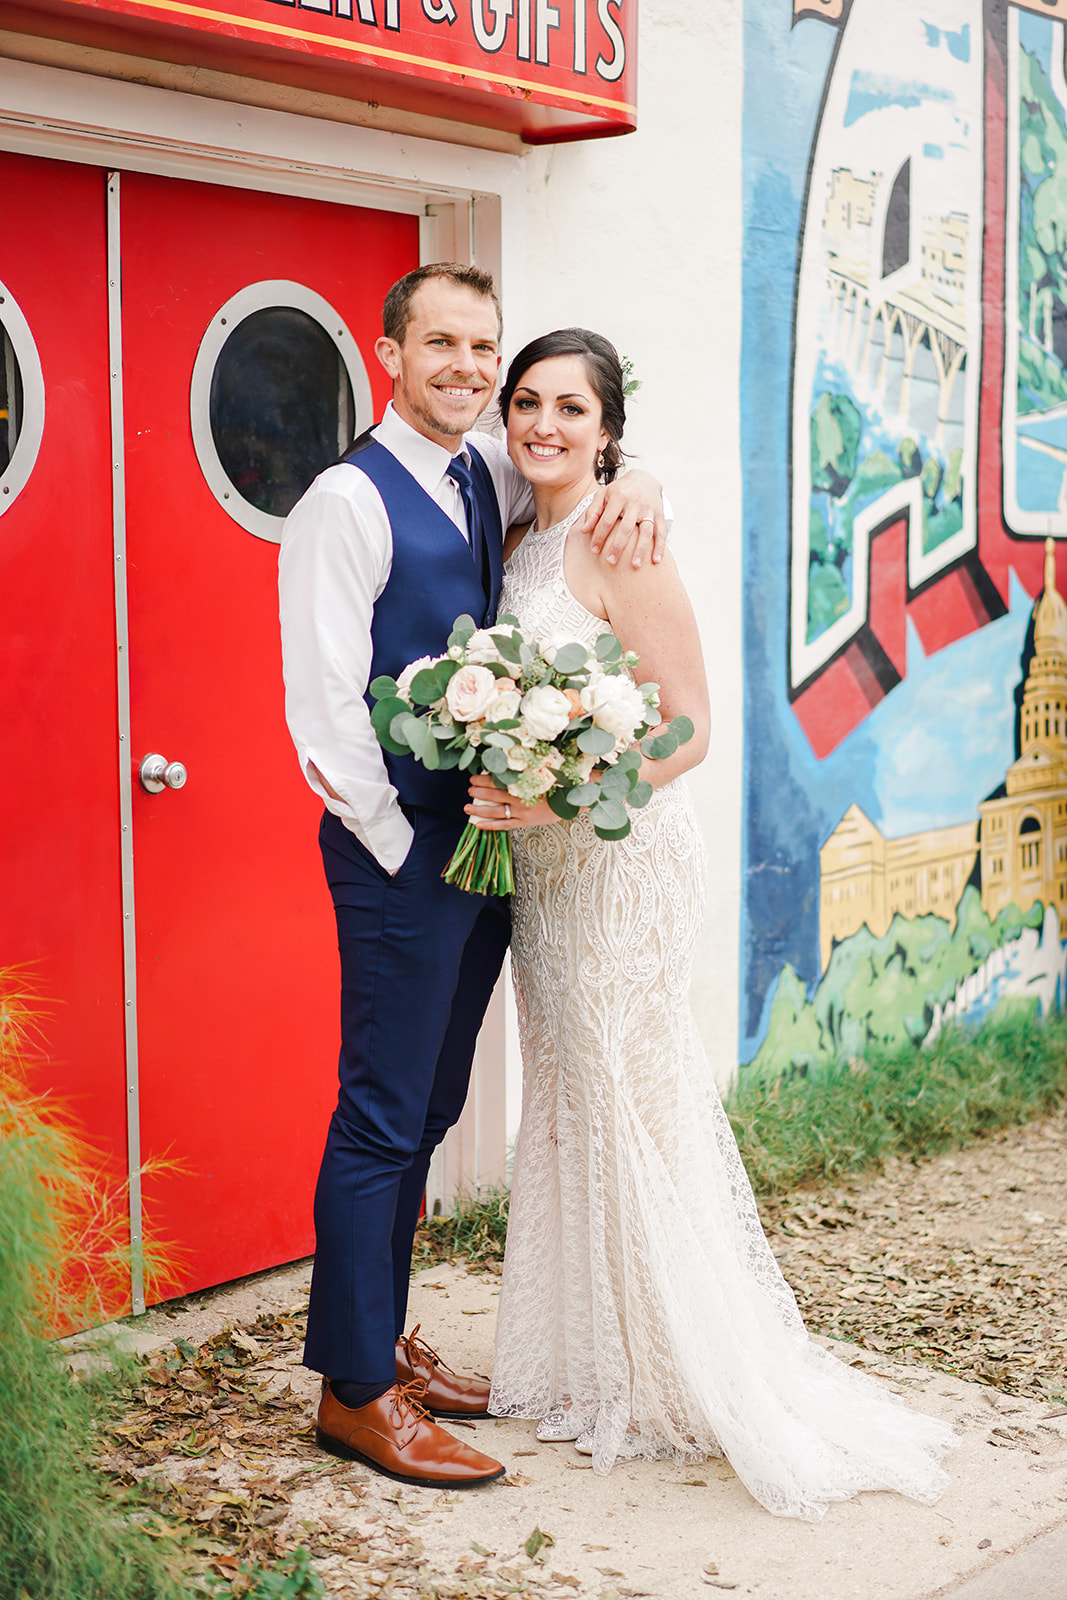 Austin Wedding Photographer | Intimate Austin Wedding Photos | Chapel Dulcinea Wedding | Austin Wedding Venue | Austin Elopement | Caitlin Rose Photography | Greetings from Austin Wedding